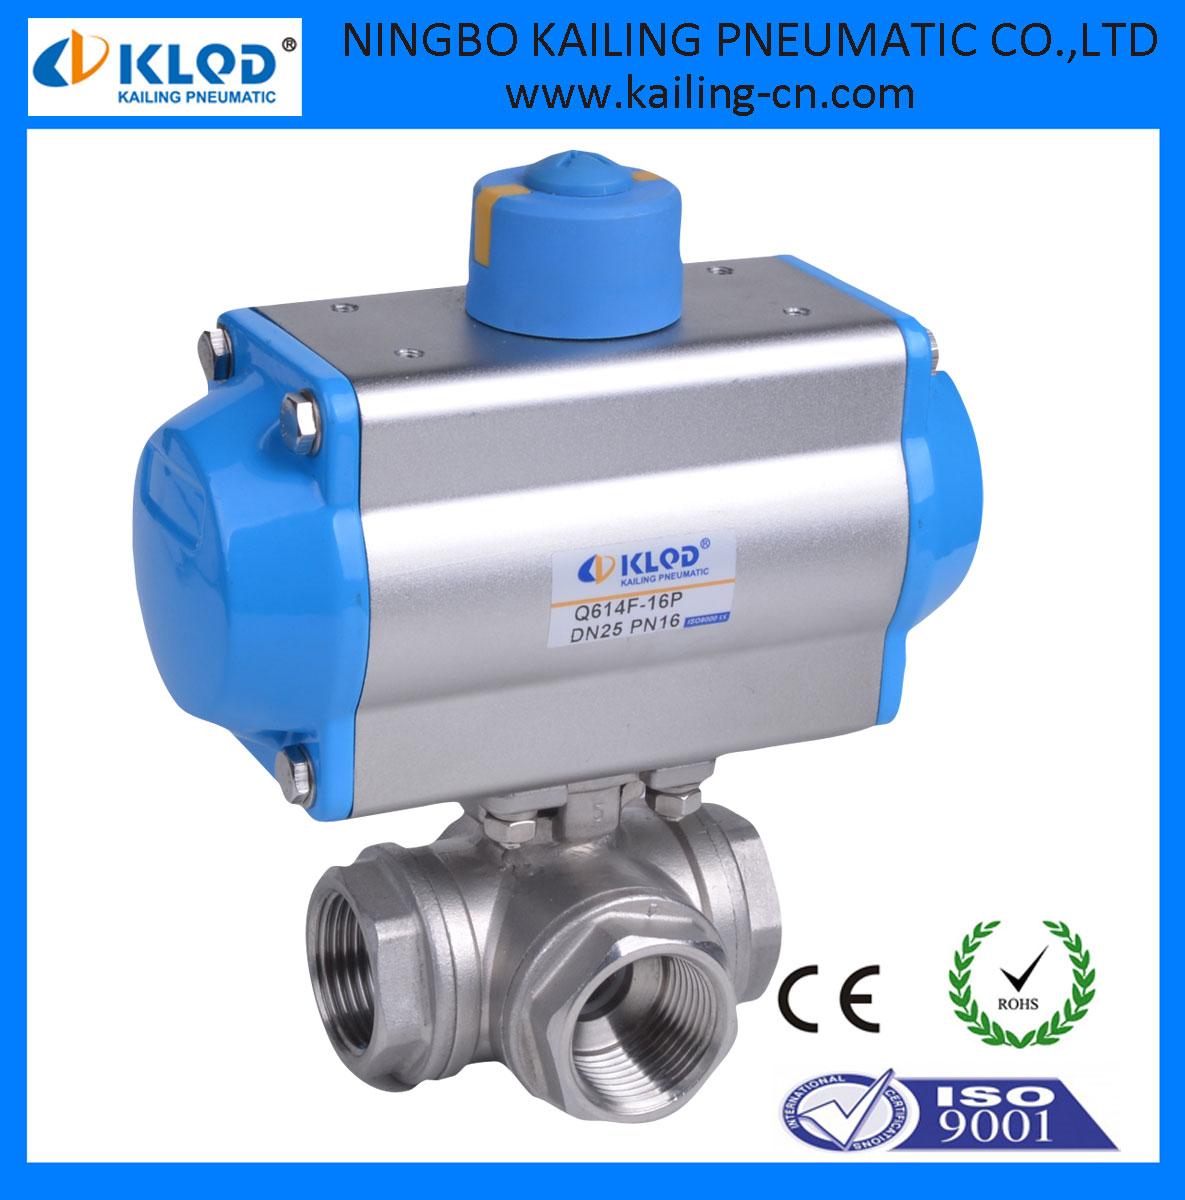 3 Way Ball Valves With Pneumatic Actuator Double Acting Dn50 Klqd ...